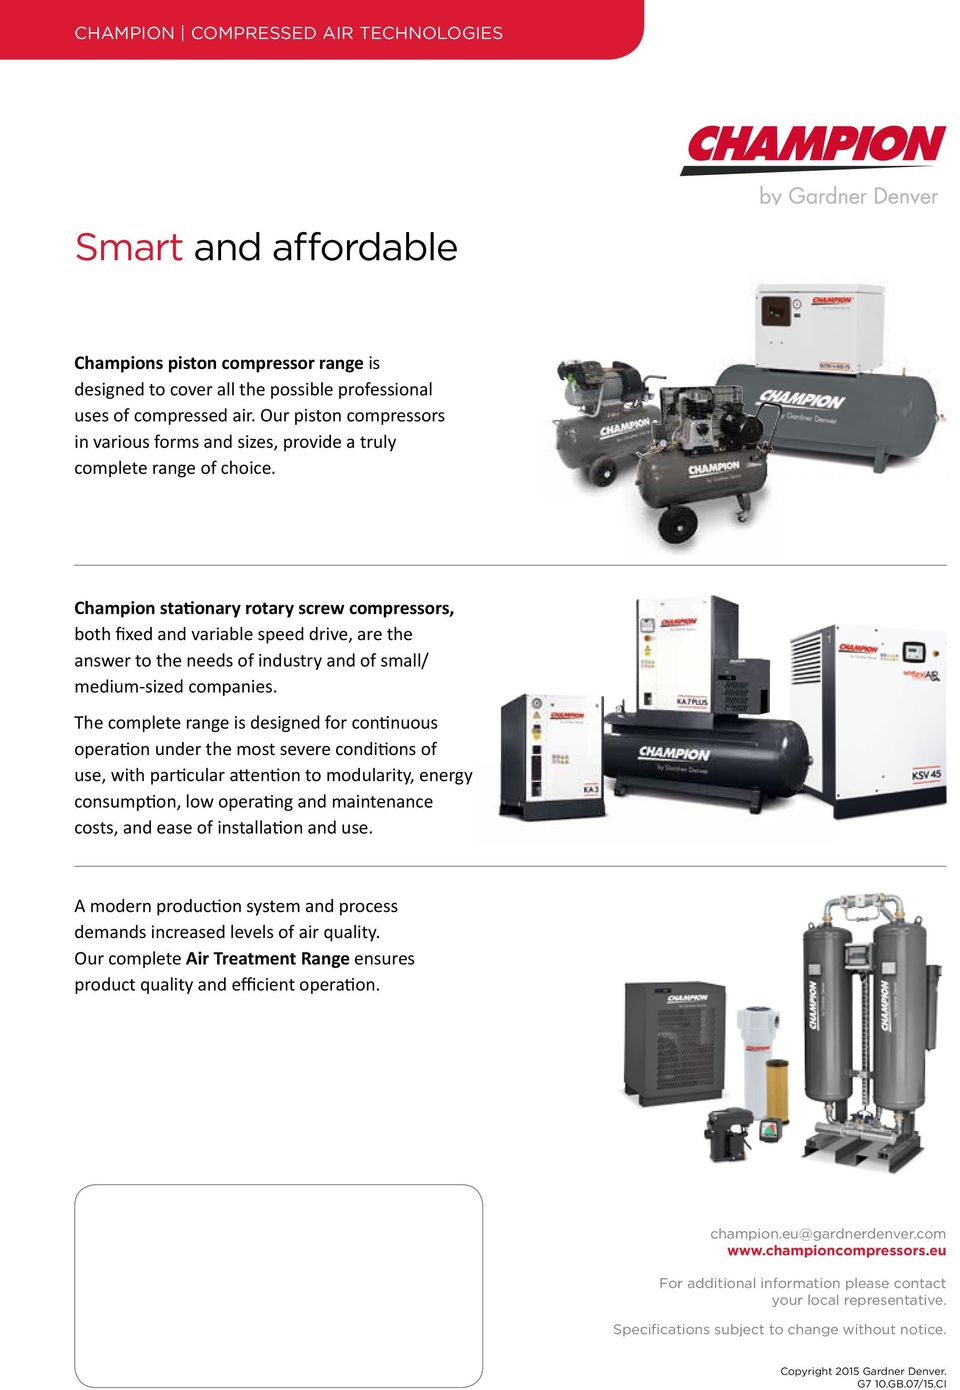 Champion stationary rotary screw compressors, both fixed and variable speed drive, are the answer to the needs of industry and of small/ medium-sized companies.